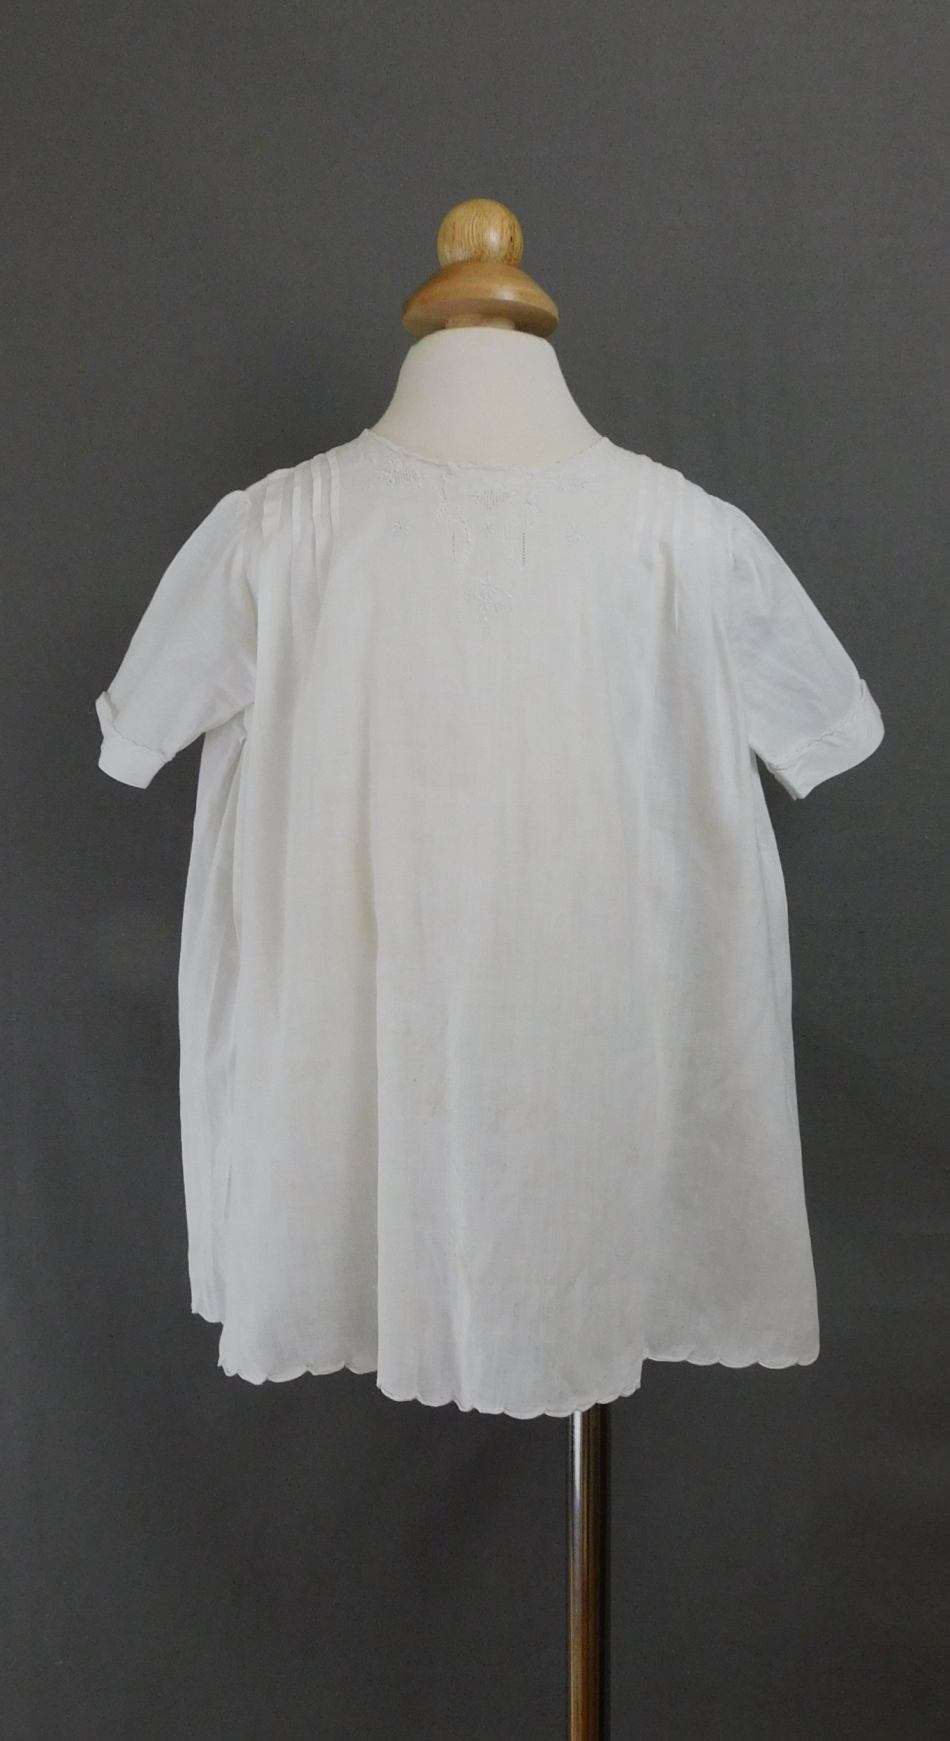 Vintage White Cotton Little Girl Dress 1940s, 24 inch chest, Hand sewn, some issues